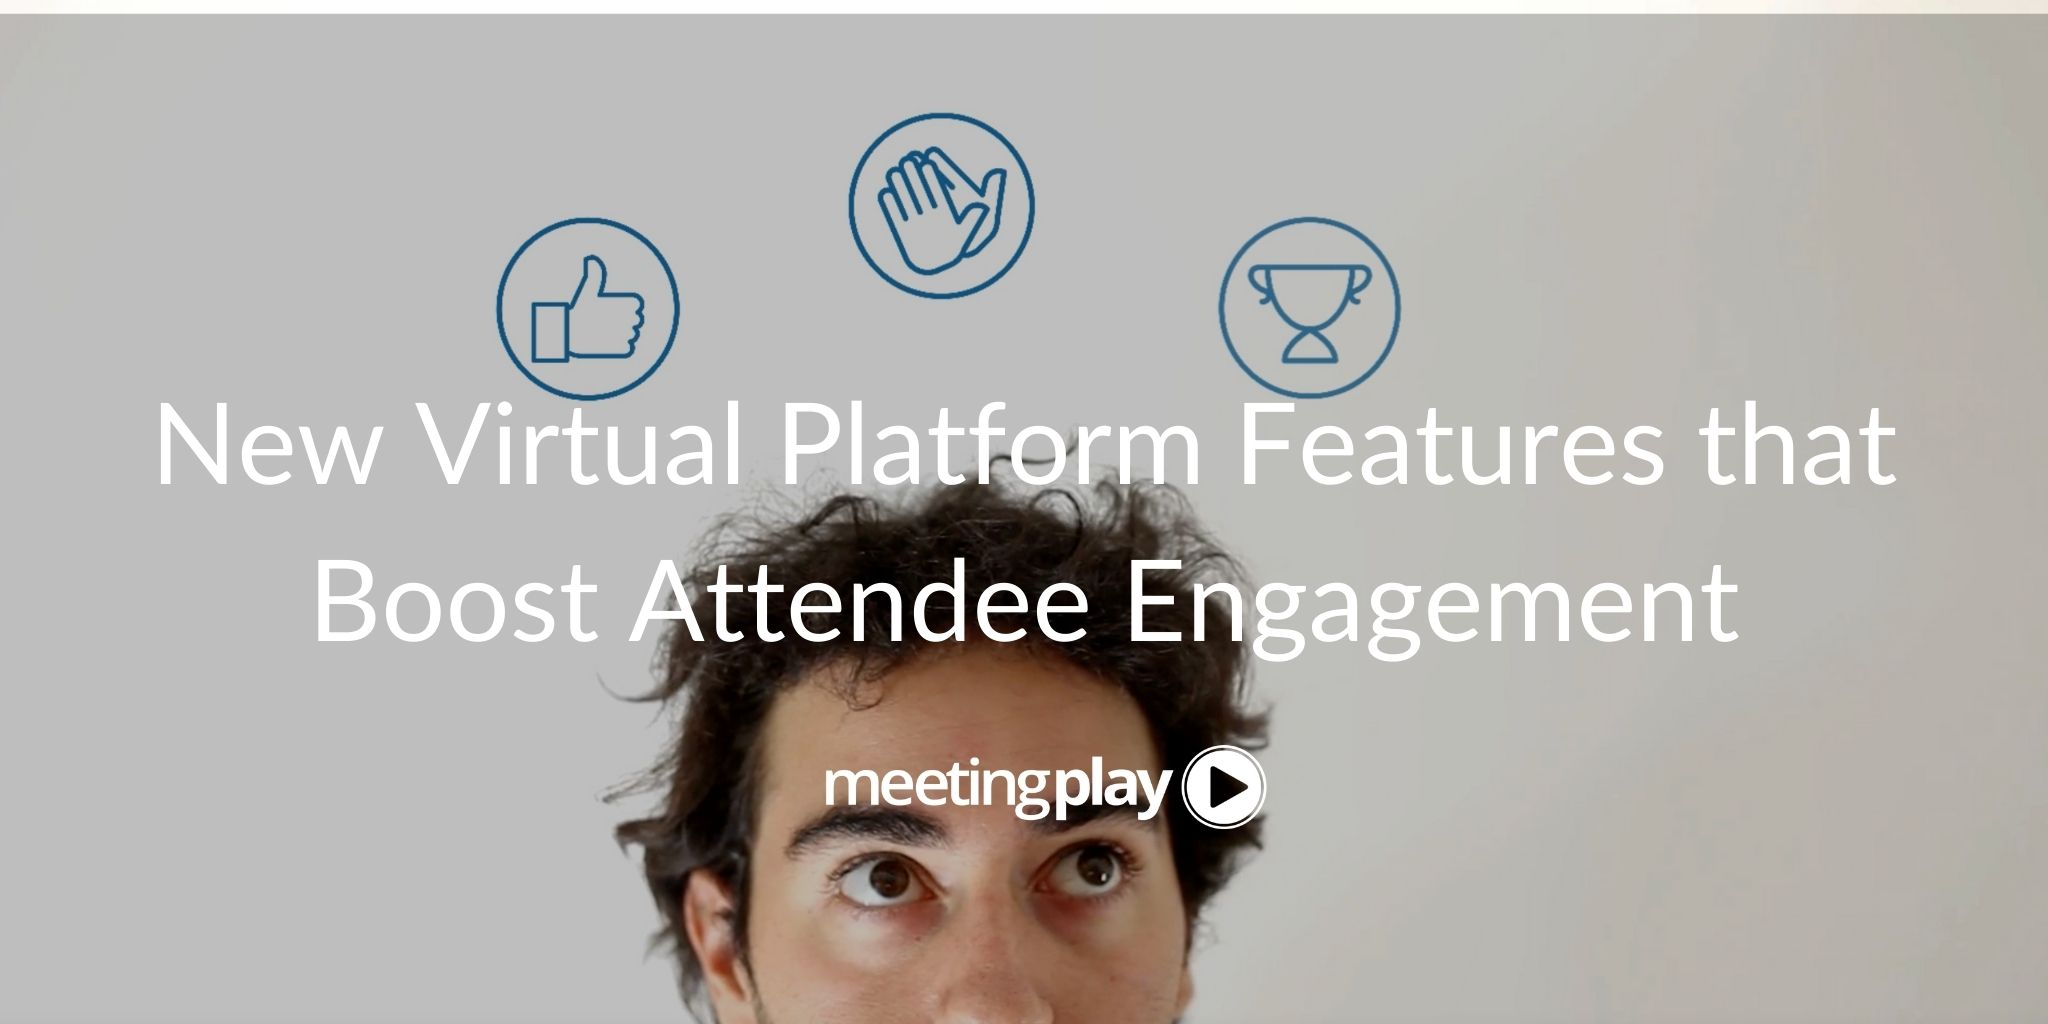 New Virtual Platform Features that Boost Attendee Engagement